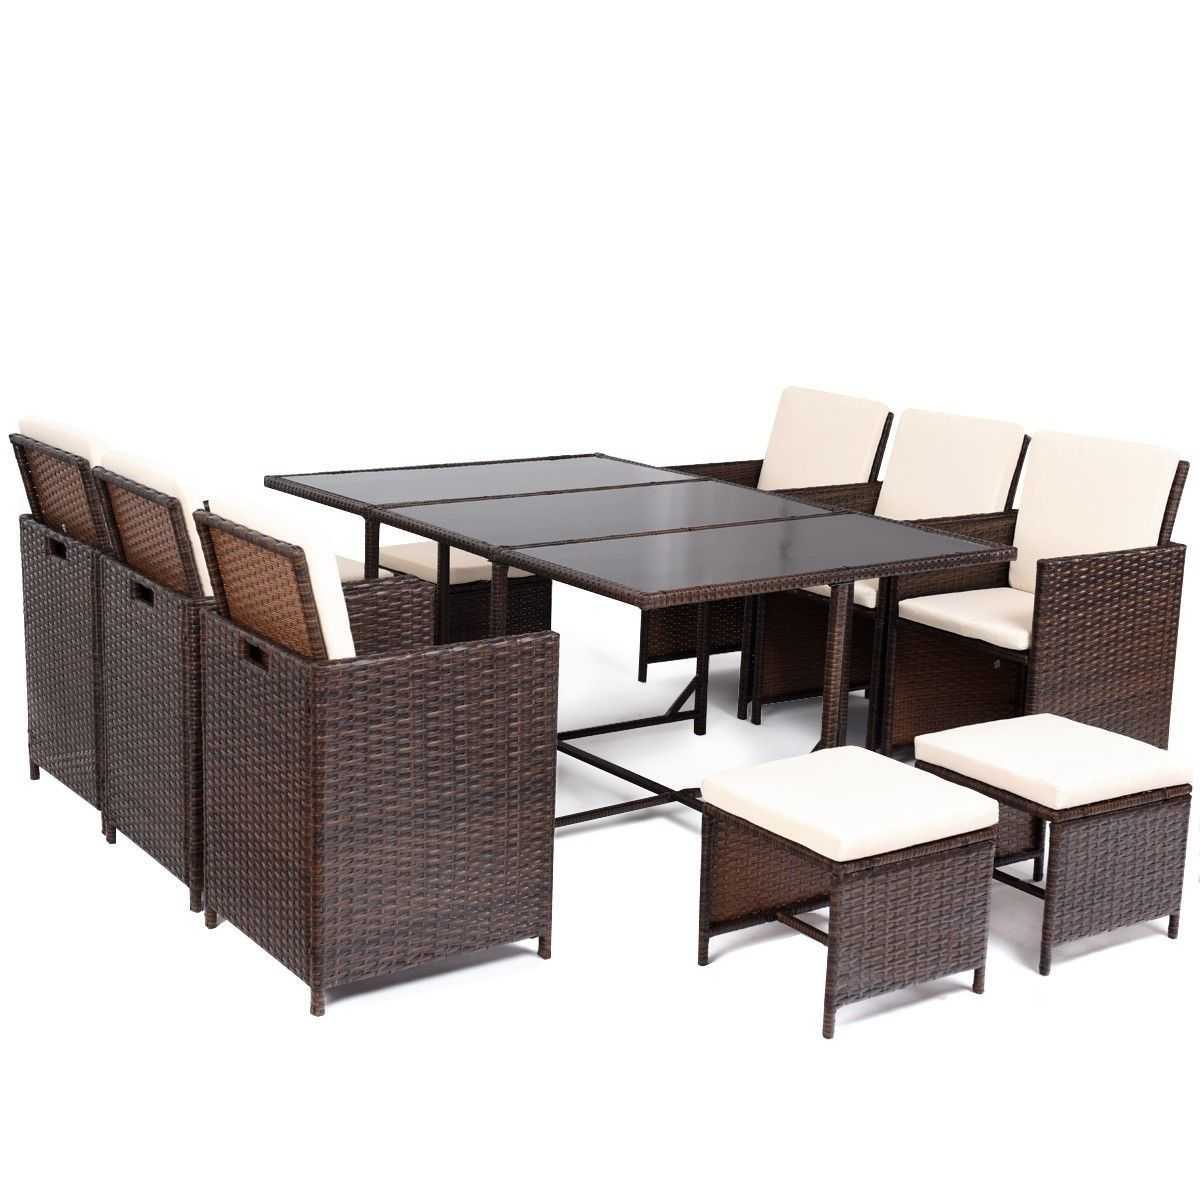 11 Pcs Outdoor Patio Dining Rattan Wicker Furniture Set 595 95